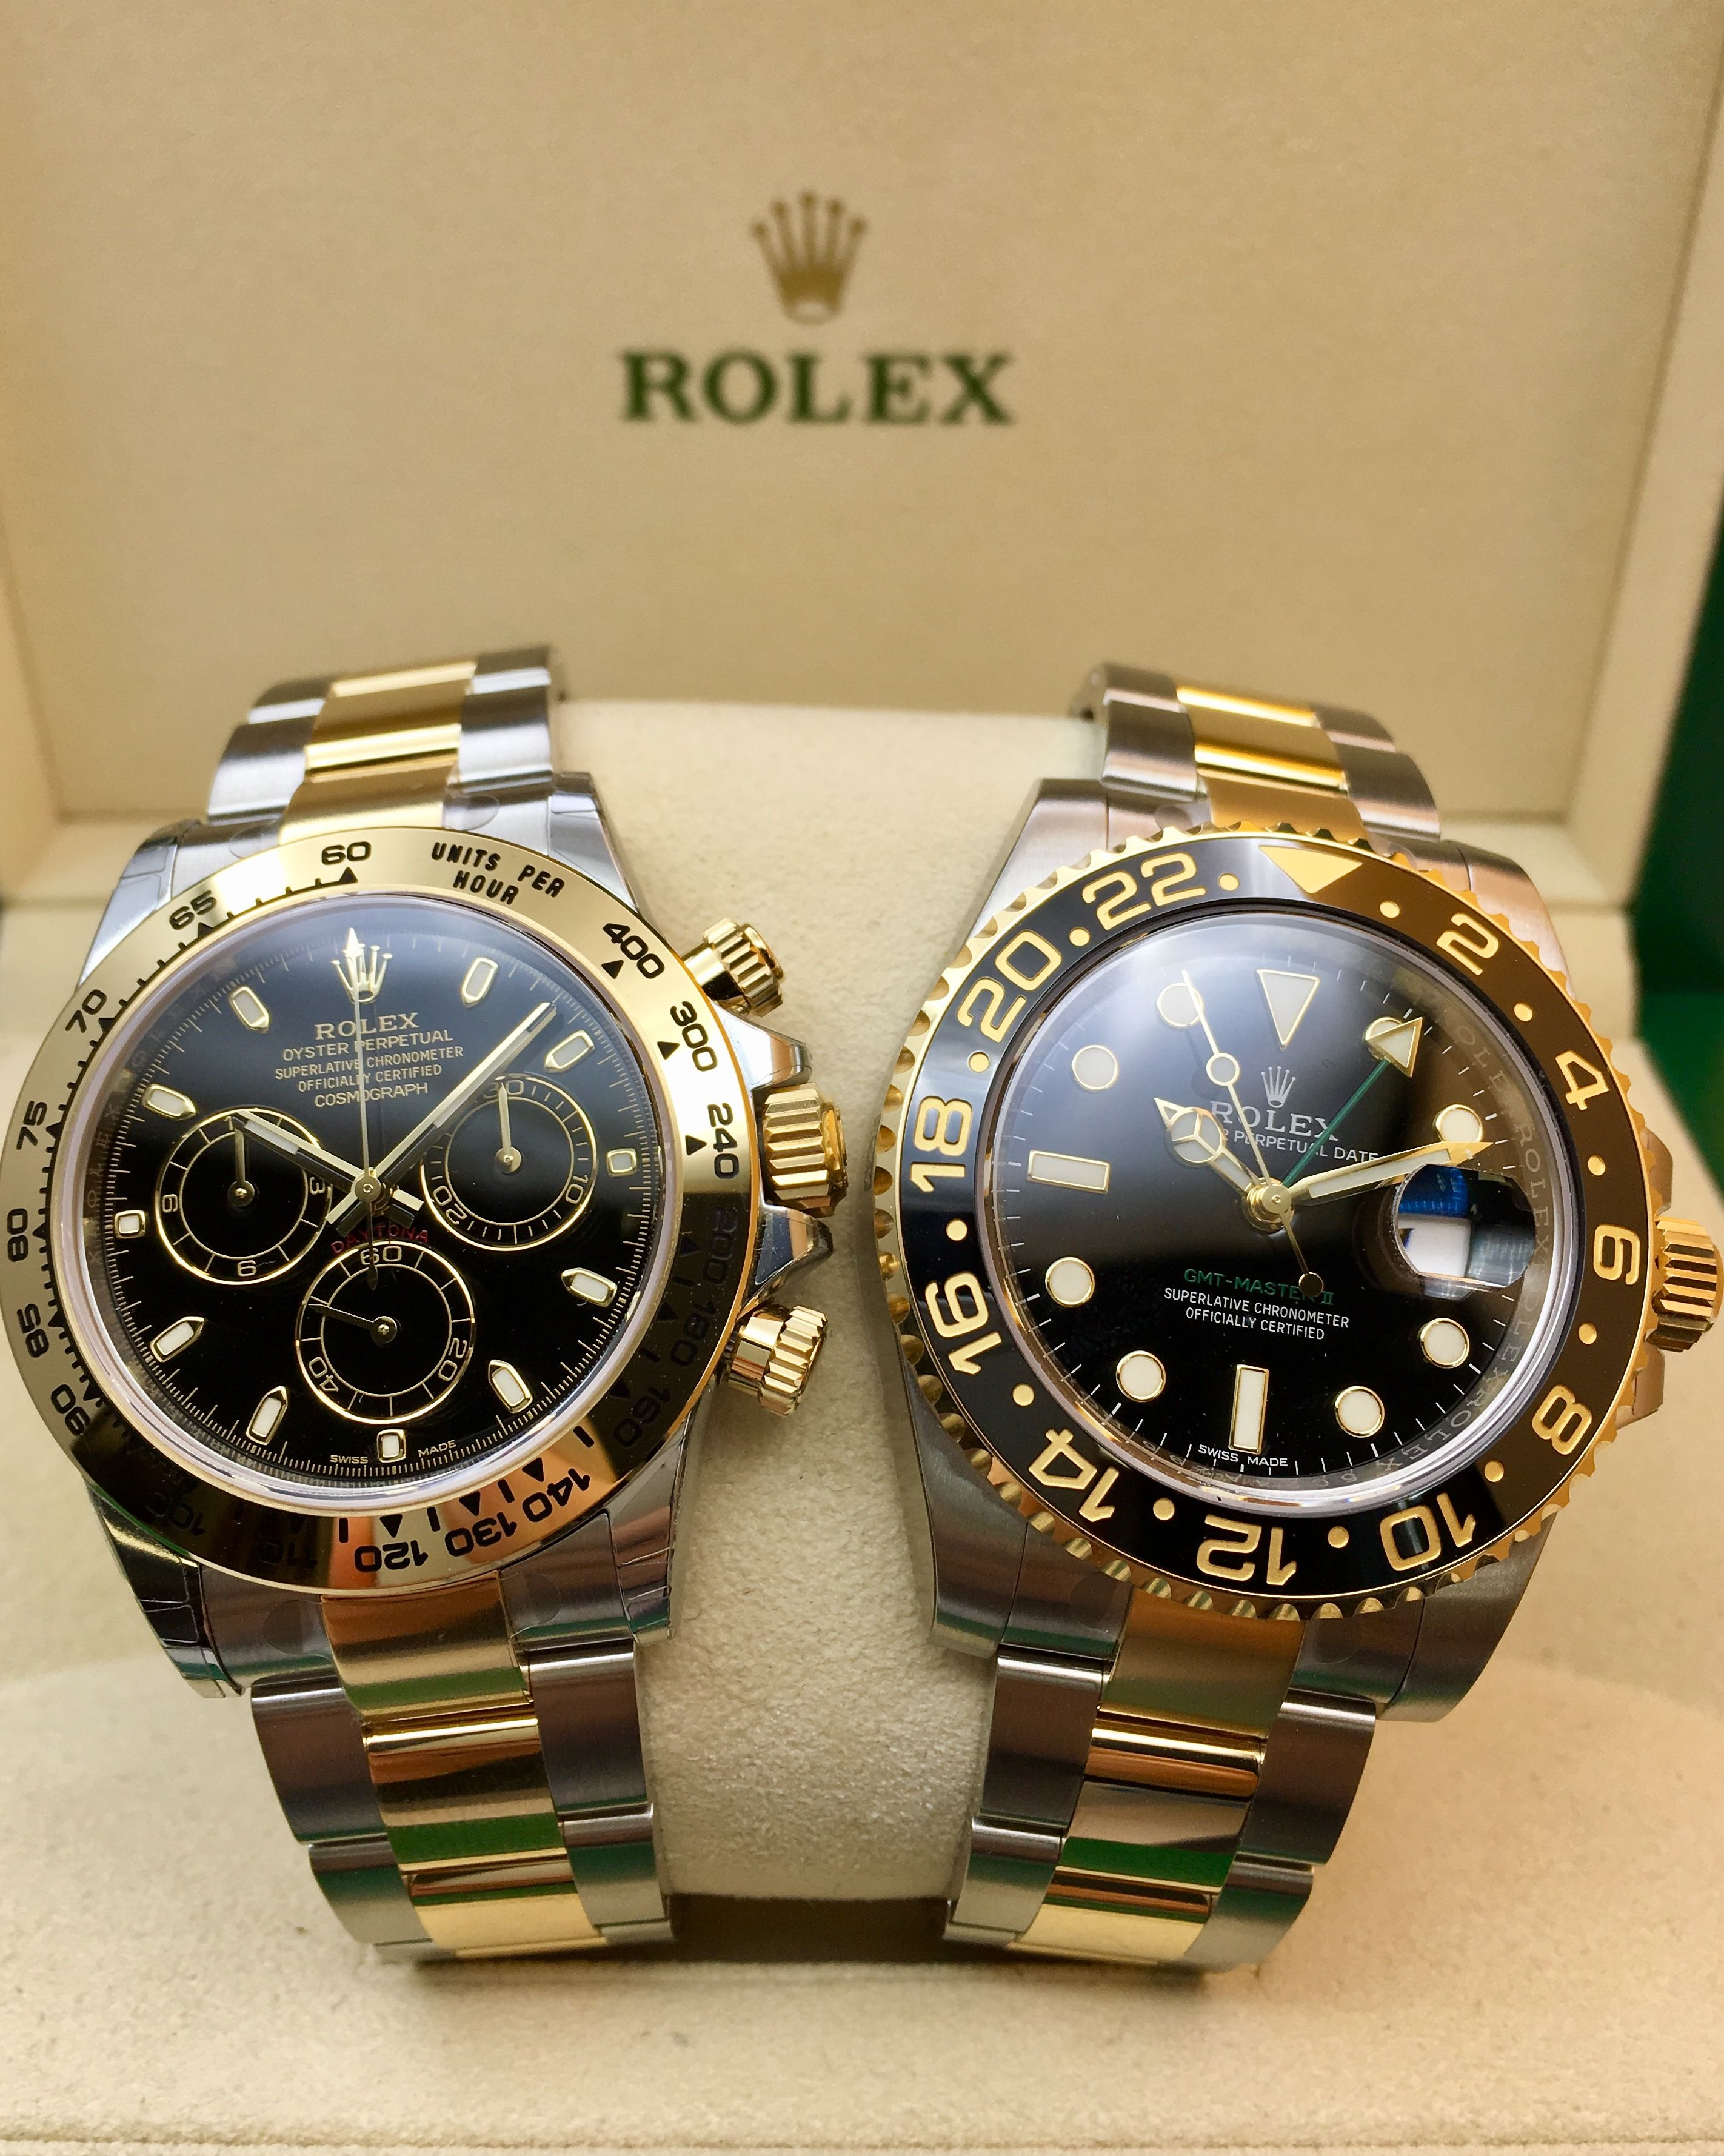 cea5788c9d1 Its all about the Sports Models! #DailyDuo   Rolex   Watches ...